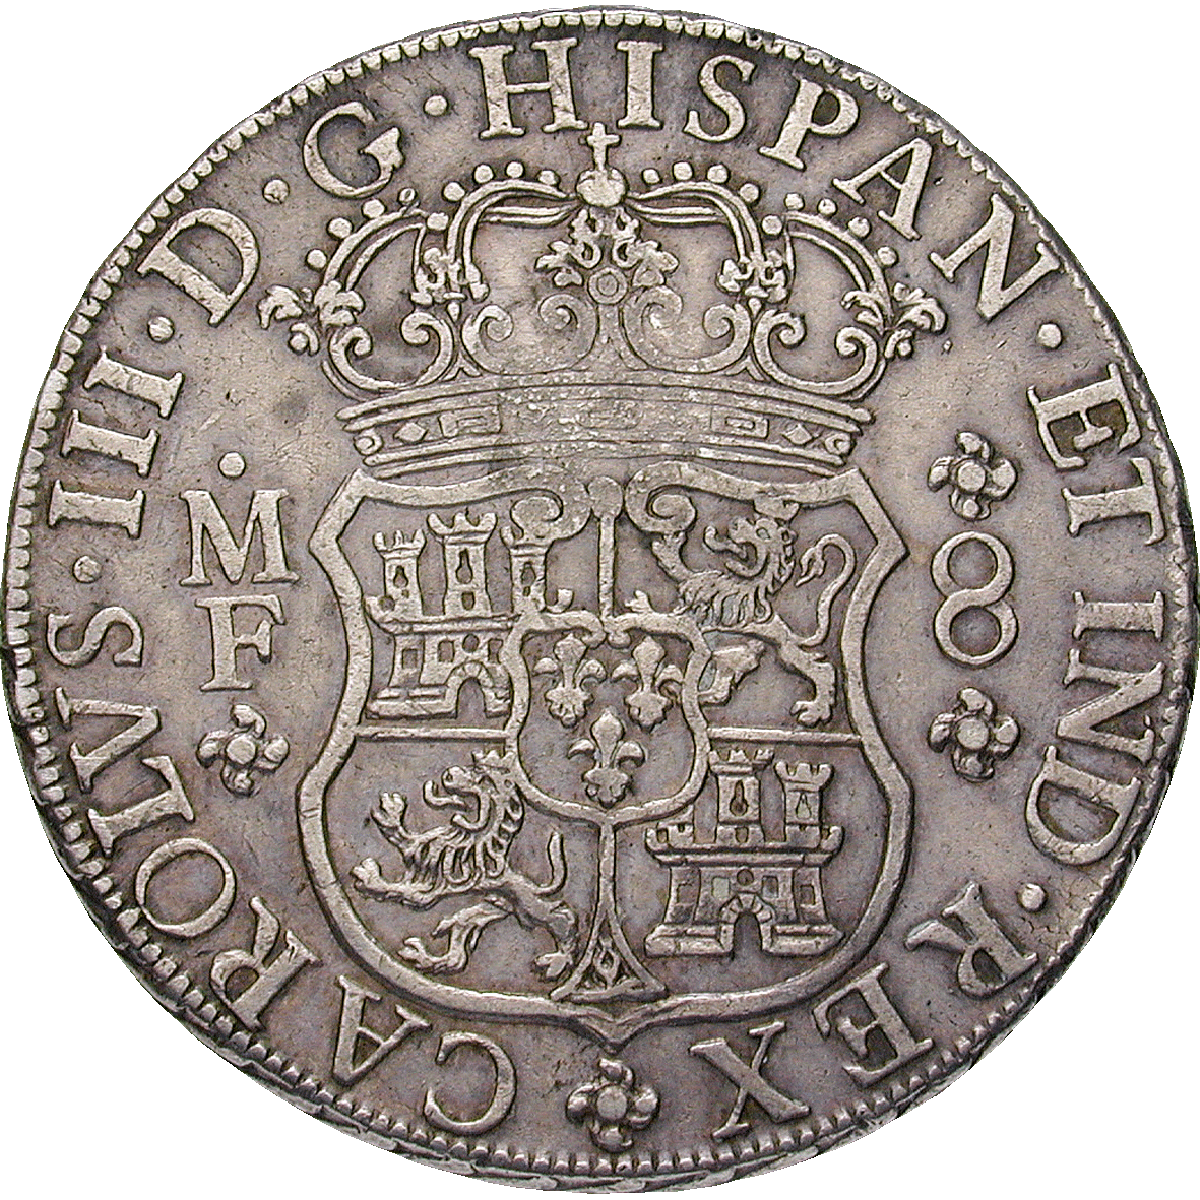 Mozambique, José I of Portugal, Real de a ocho (Peso) 1765 with Mozambican Countermark (obverse)